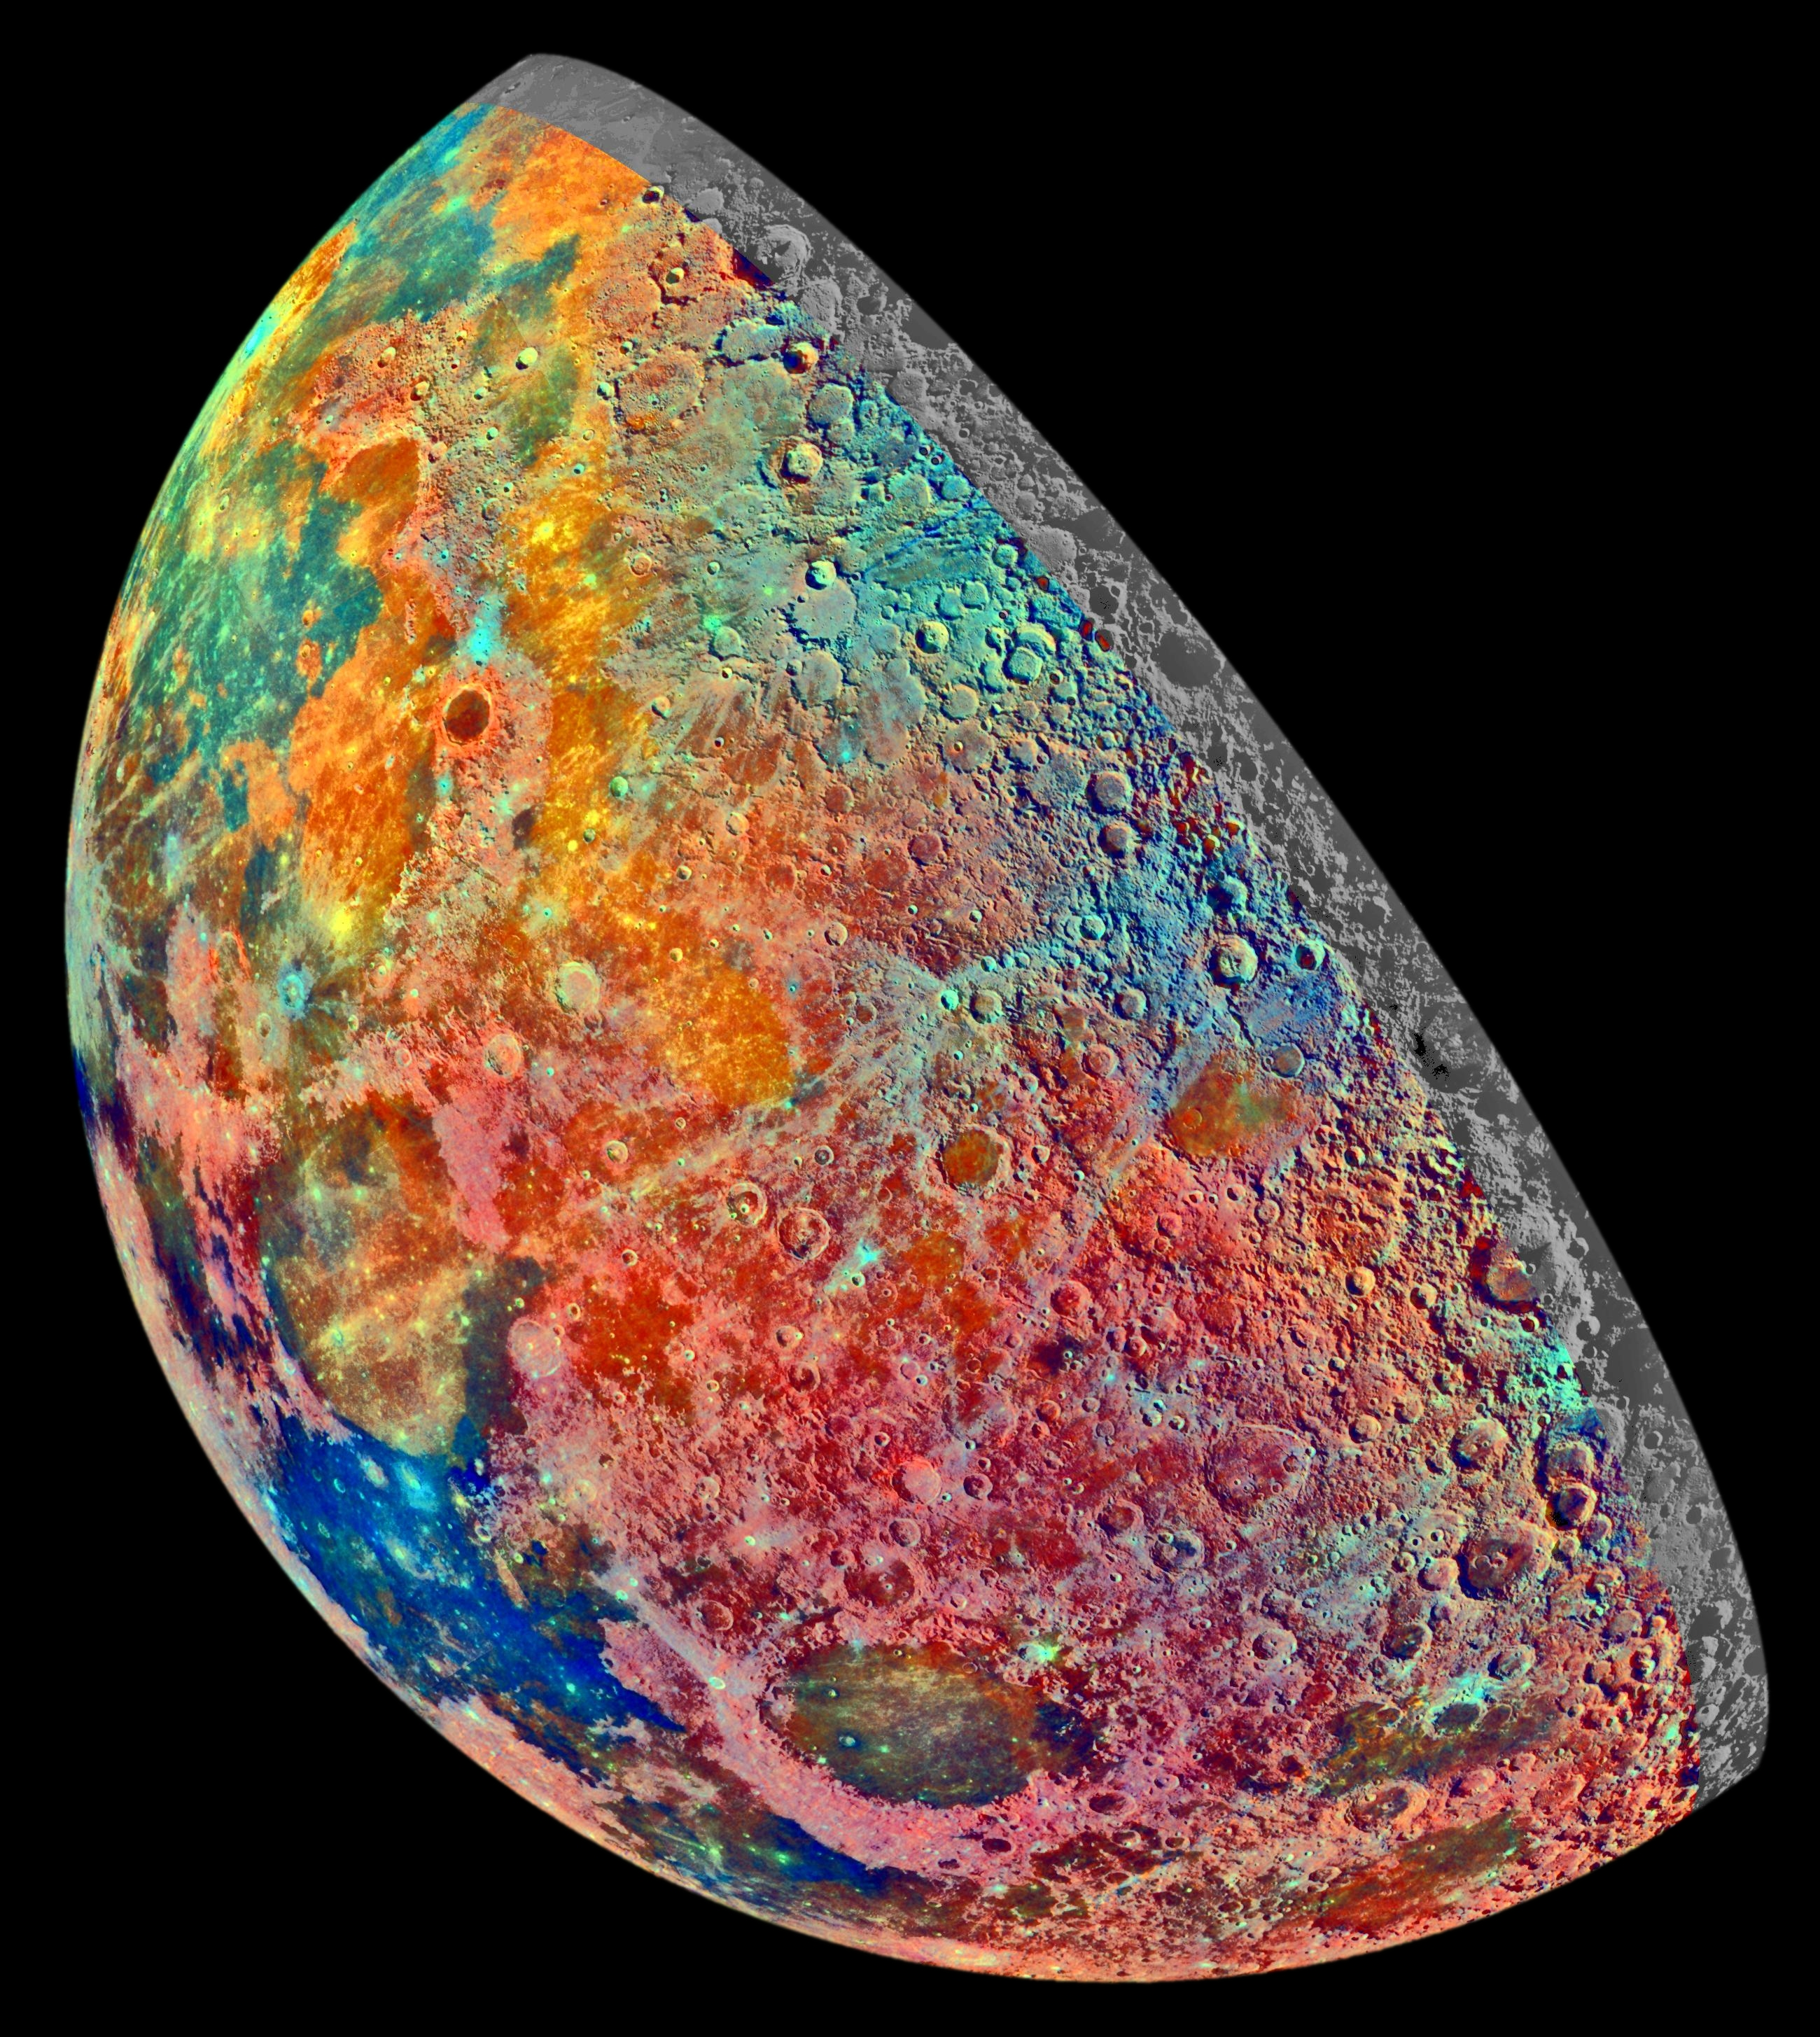 https://upload.wikimedia.org/wikipedia/commons/2/21/Moon_Crescent_-_False_Color_Mosaic.jpg